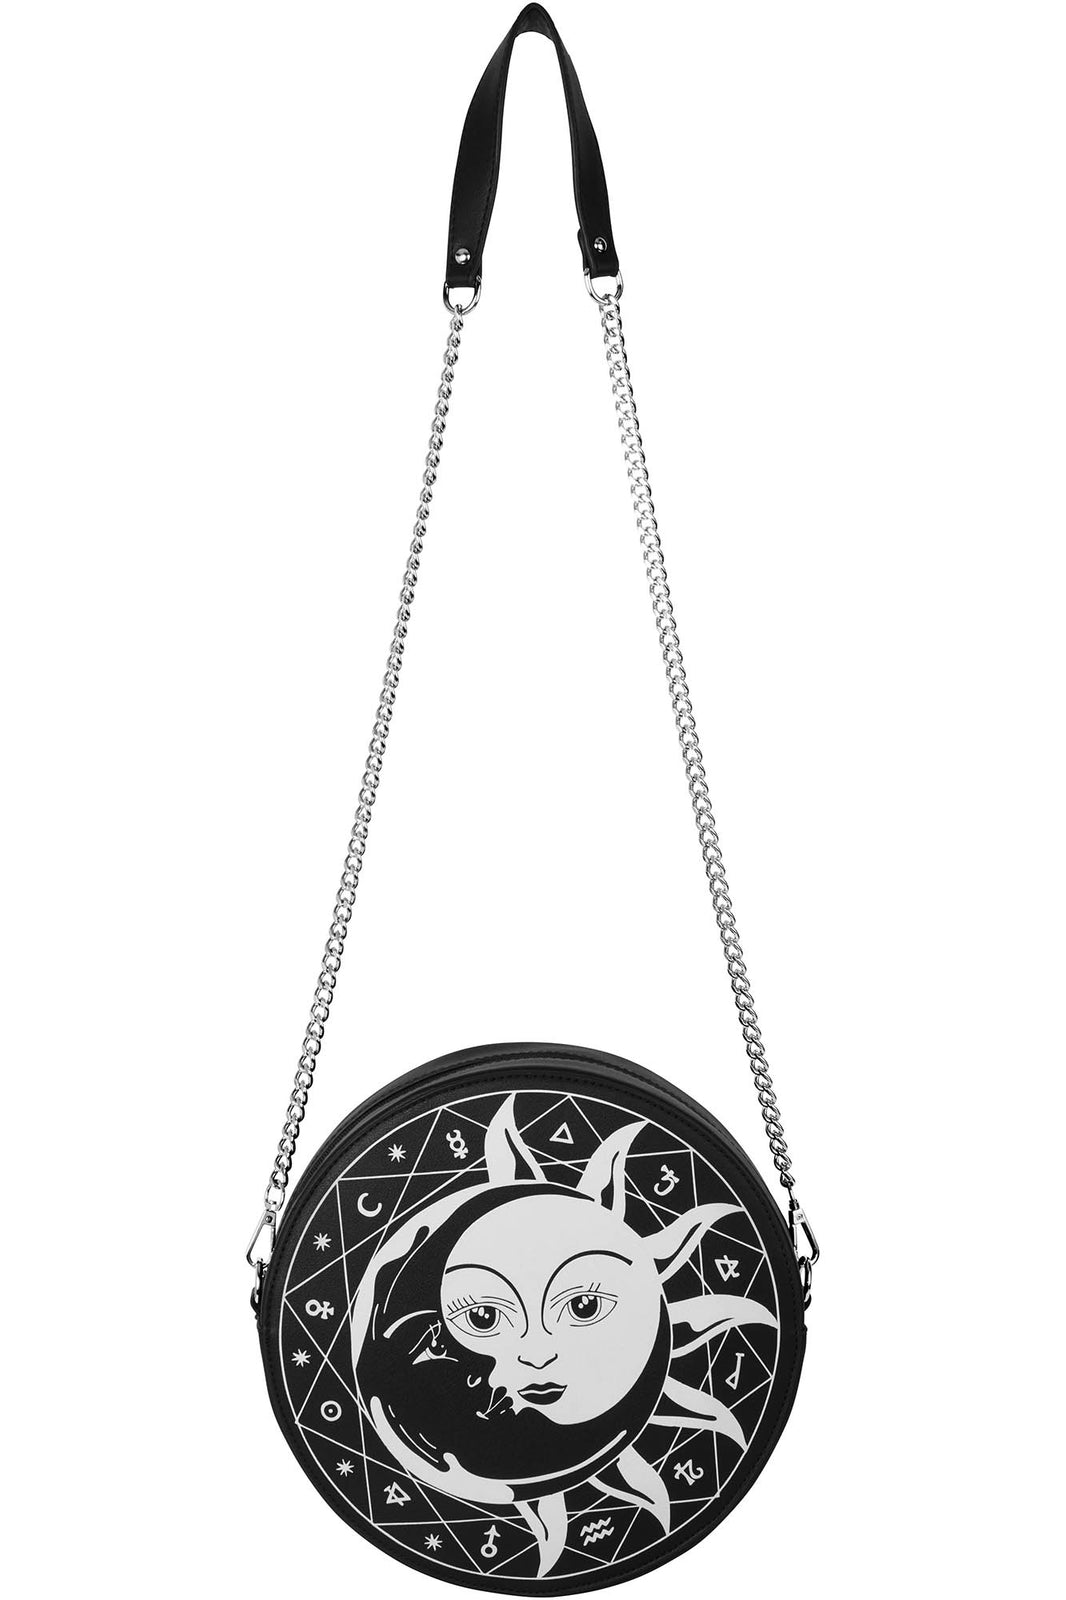 Astral Light Boho Bag